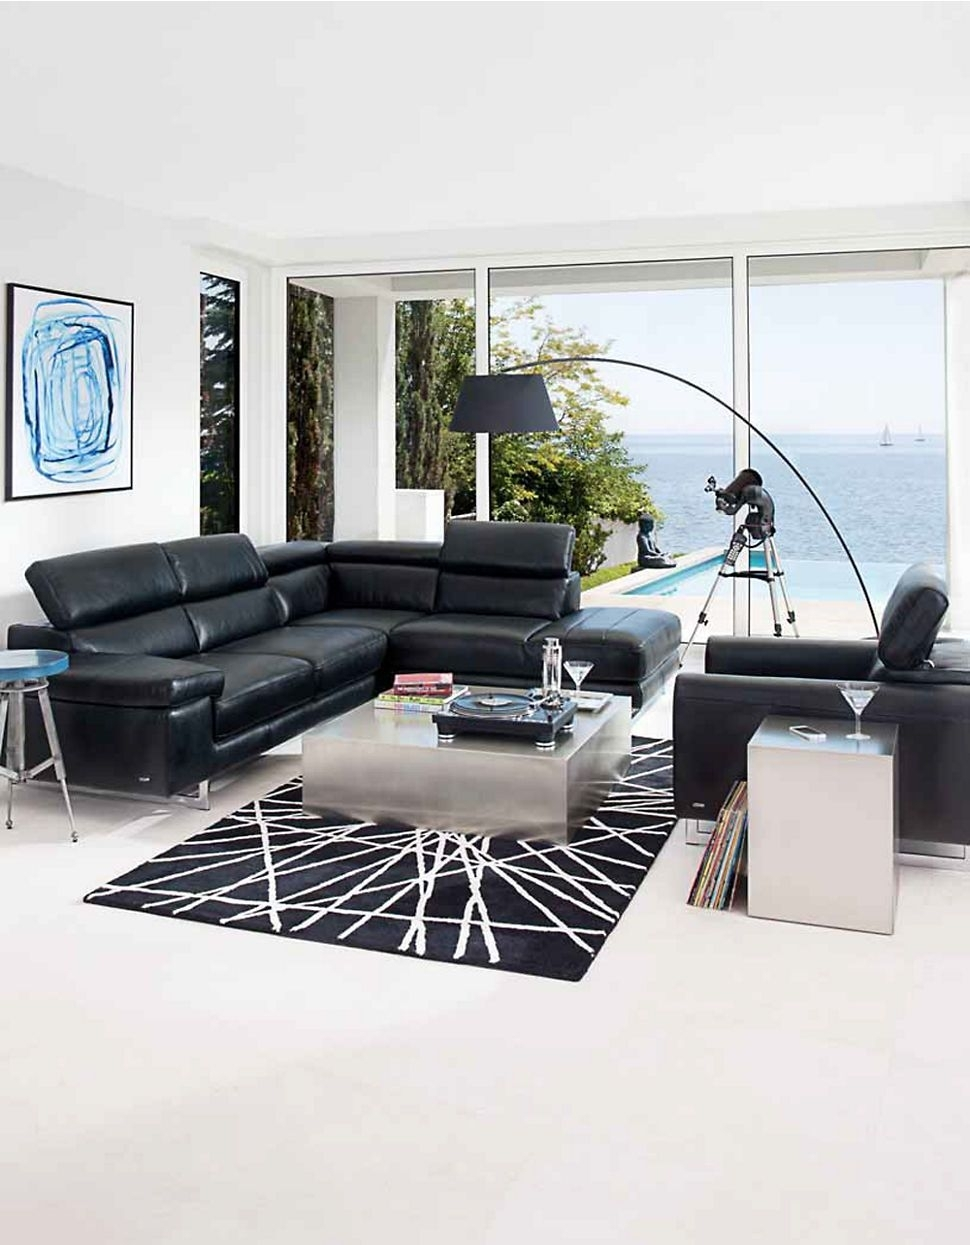 Umbria Sectional Sofanatuzzi Editions | Hudson's Bay | House Pertaining To The Bay Sectional Sofas (Image 9 of 10)